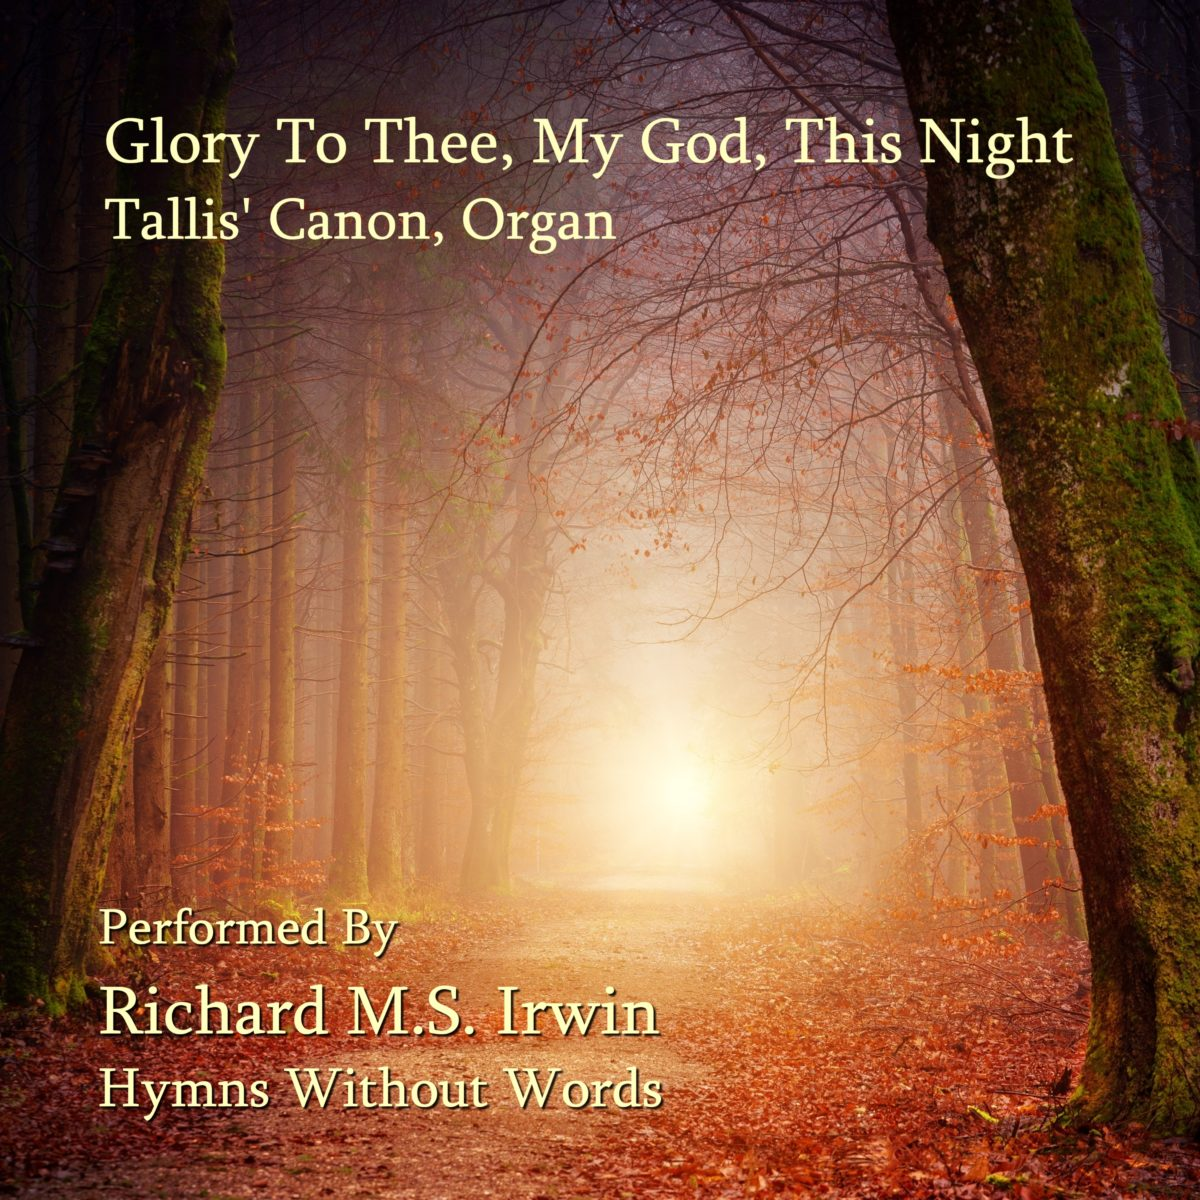 Glory To Thee My God This Night (Tallis' Canon – 5 Verses) – Organ